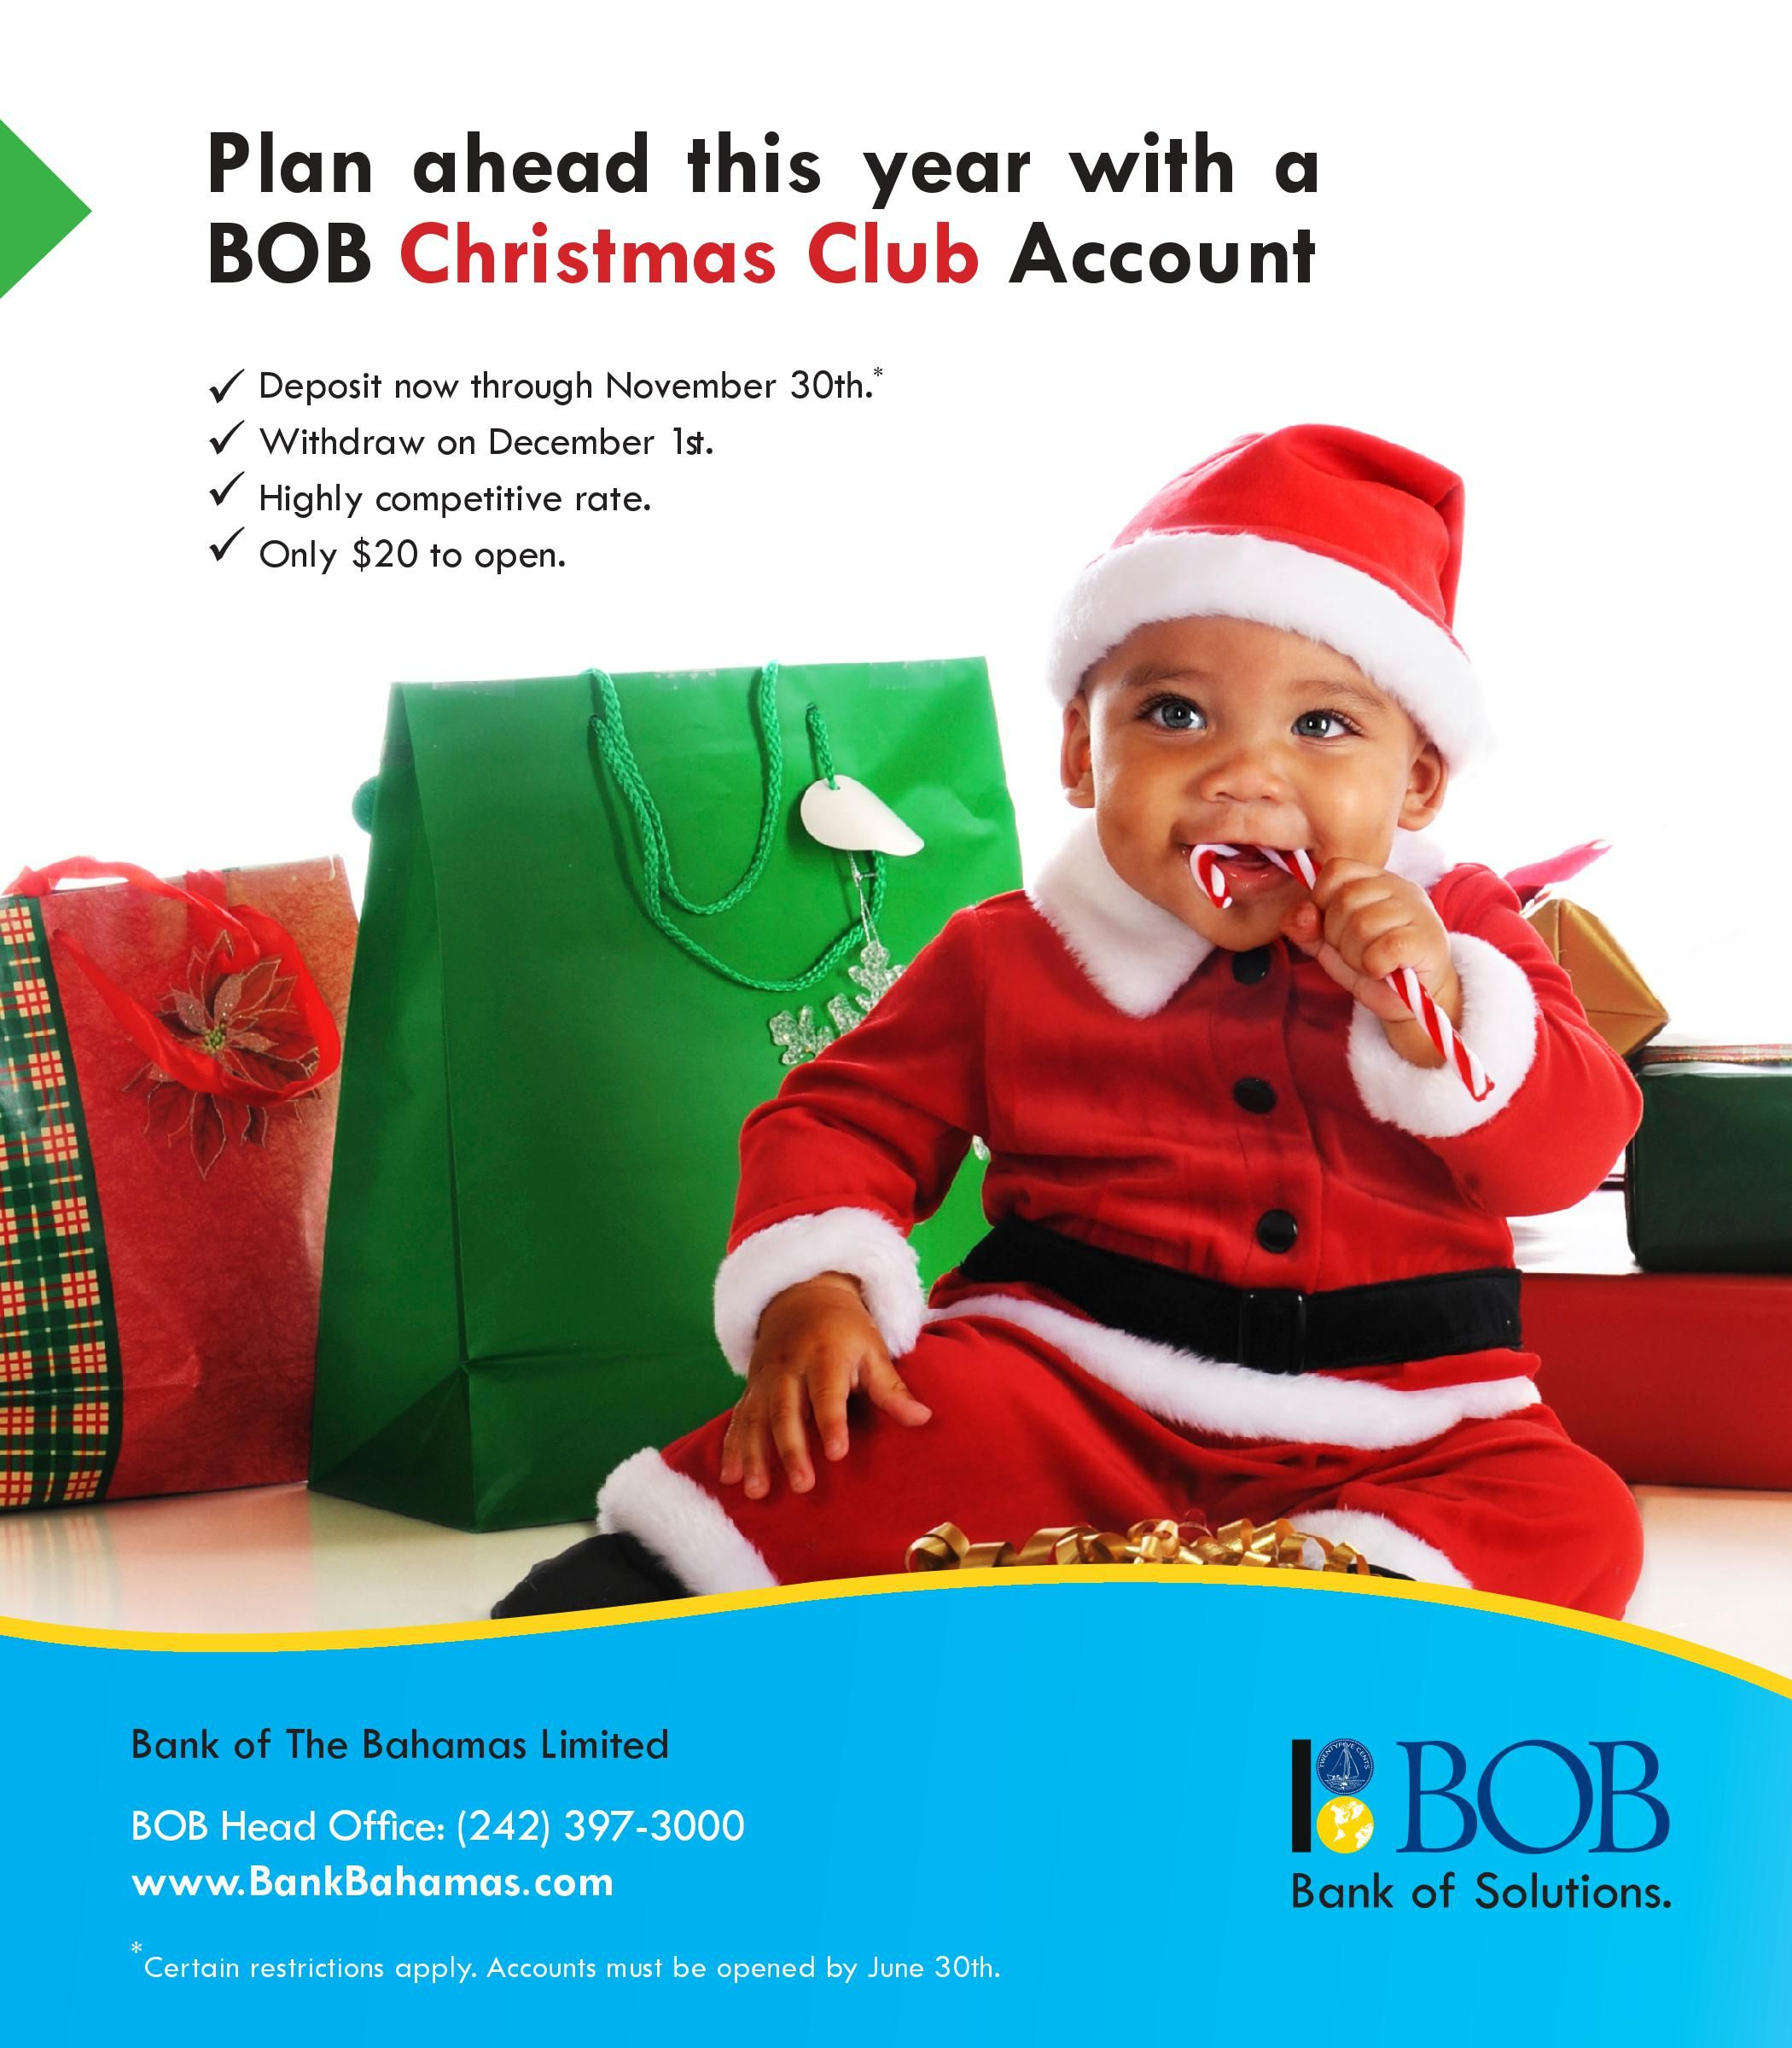 plan ahead with a bob christmas club account and get a highly competitive rate at - Christmas Club Account